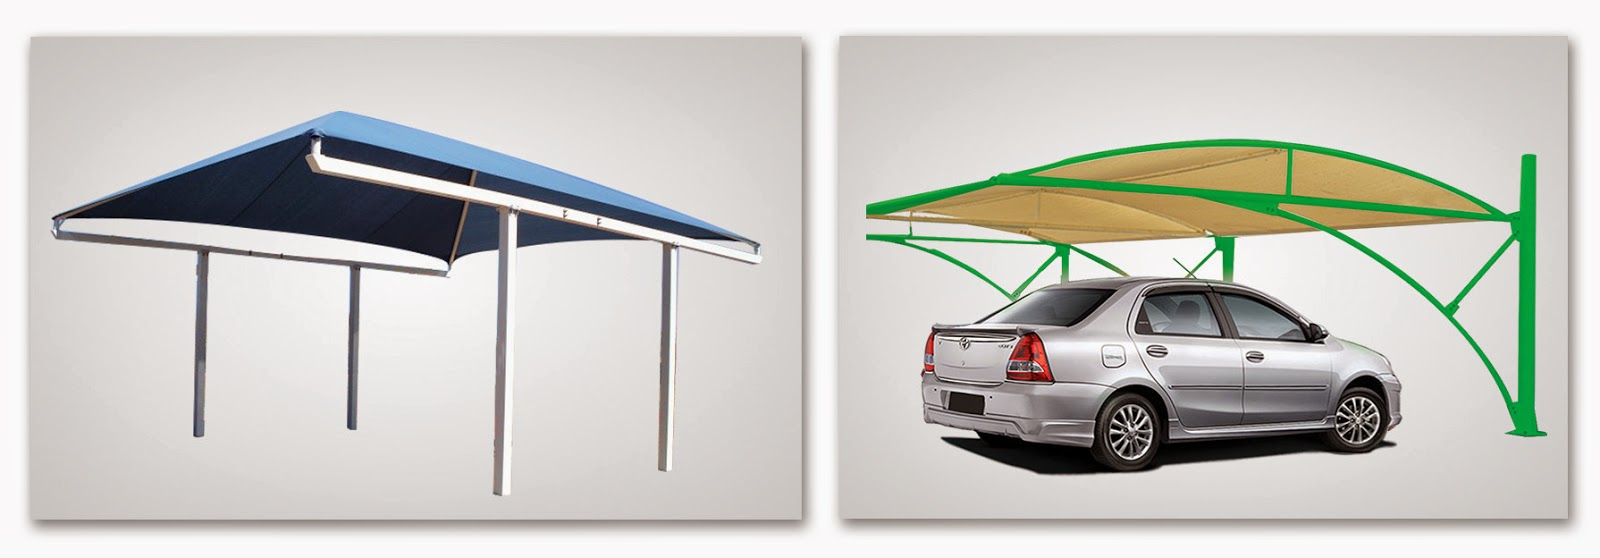 Creative Car Parking Shades Manufacturing And Installation 2014